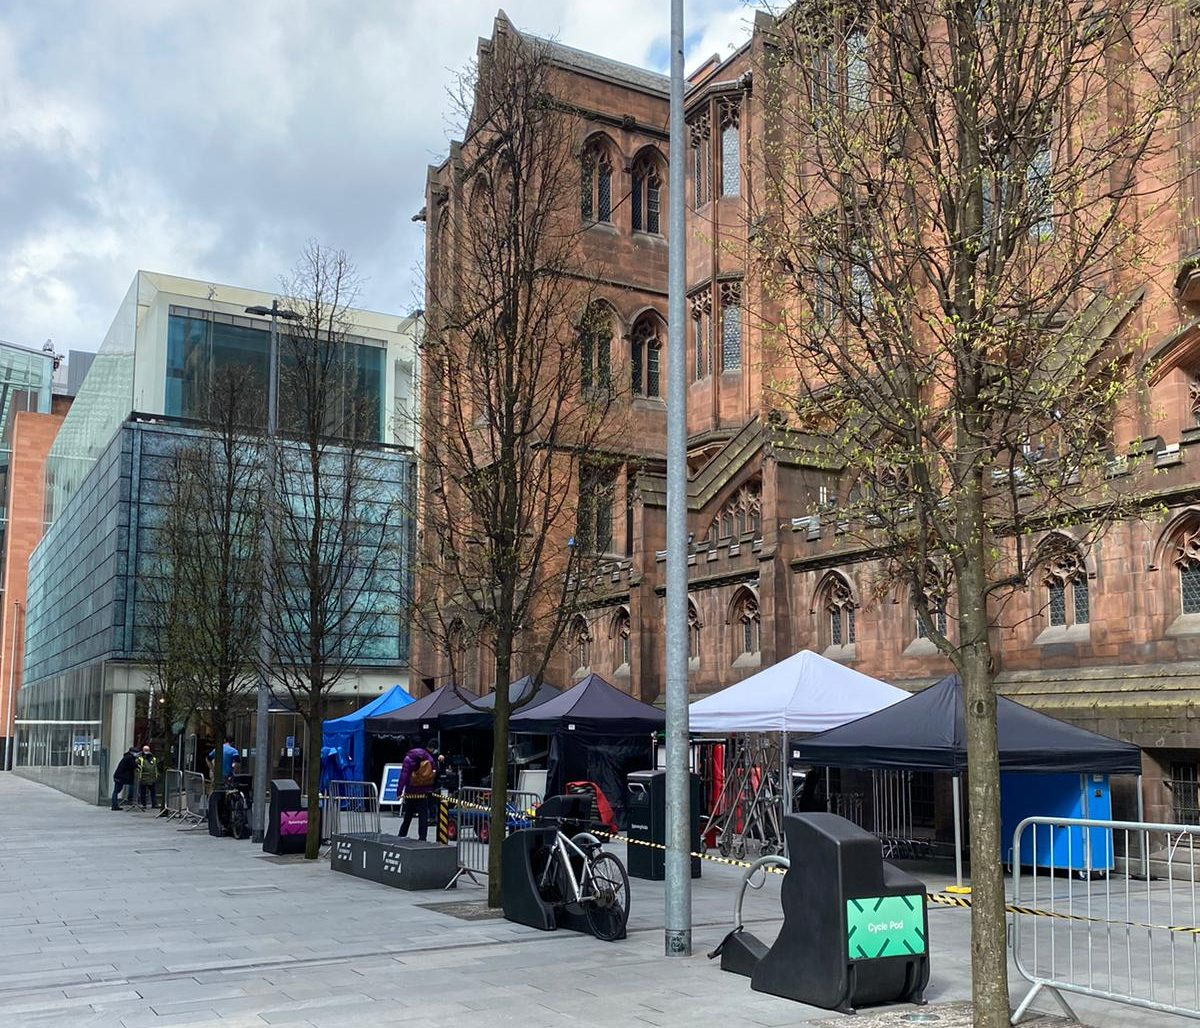 Netflix is currently filming a new series inside John Rylands Library on Deansgate, The Manc